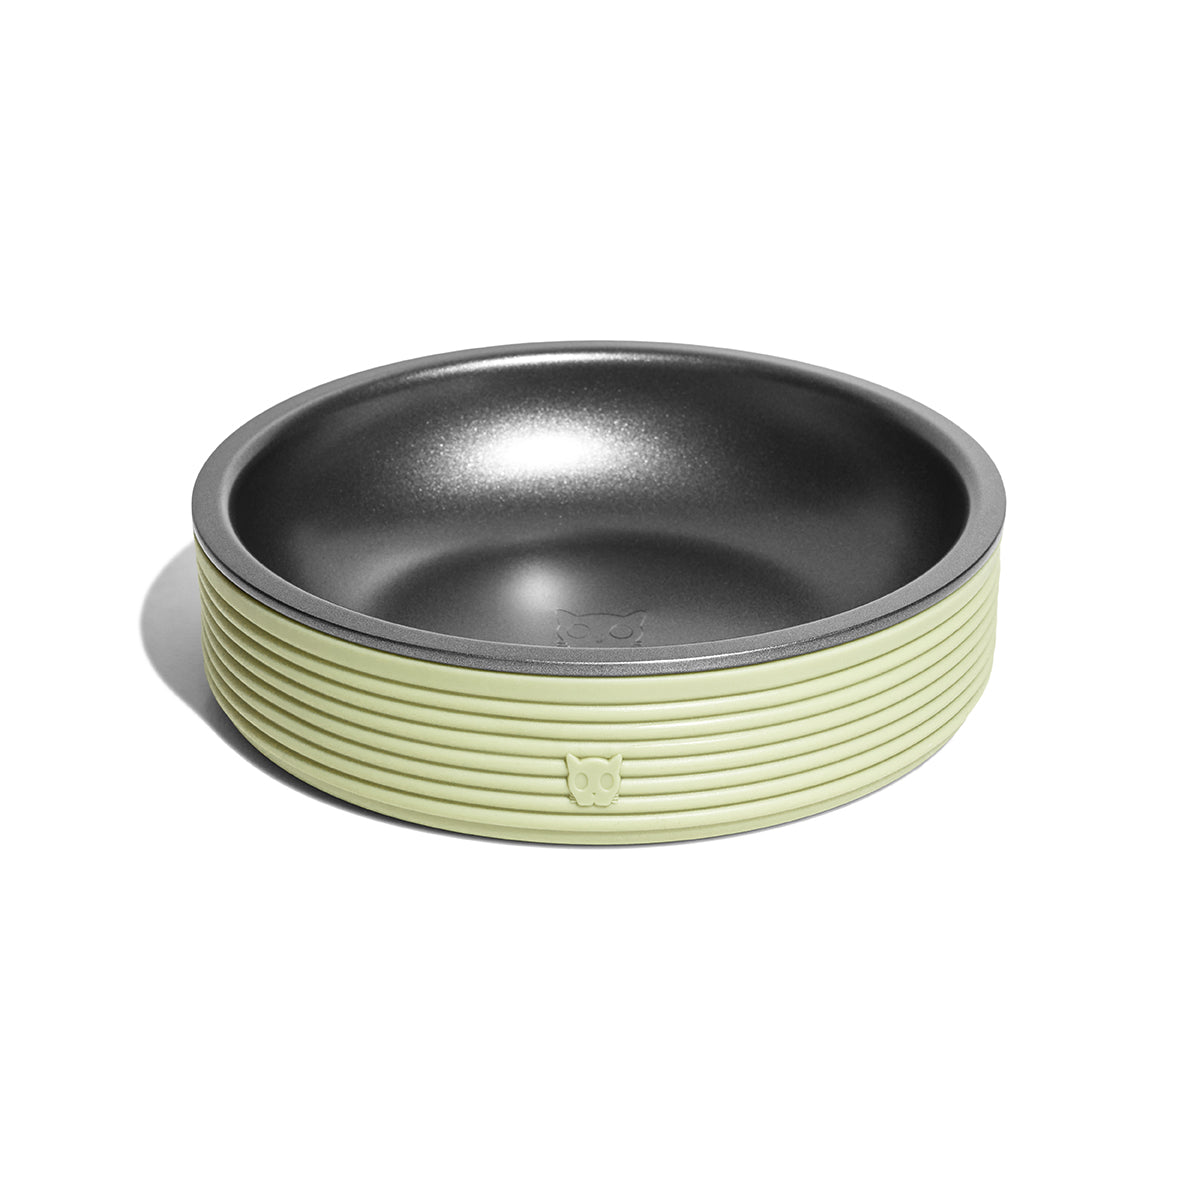 Zee Cat Duo Bowl for Cats - Olive